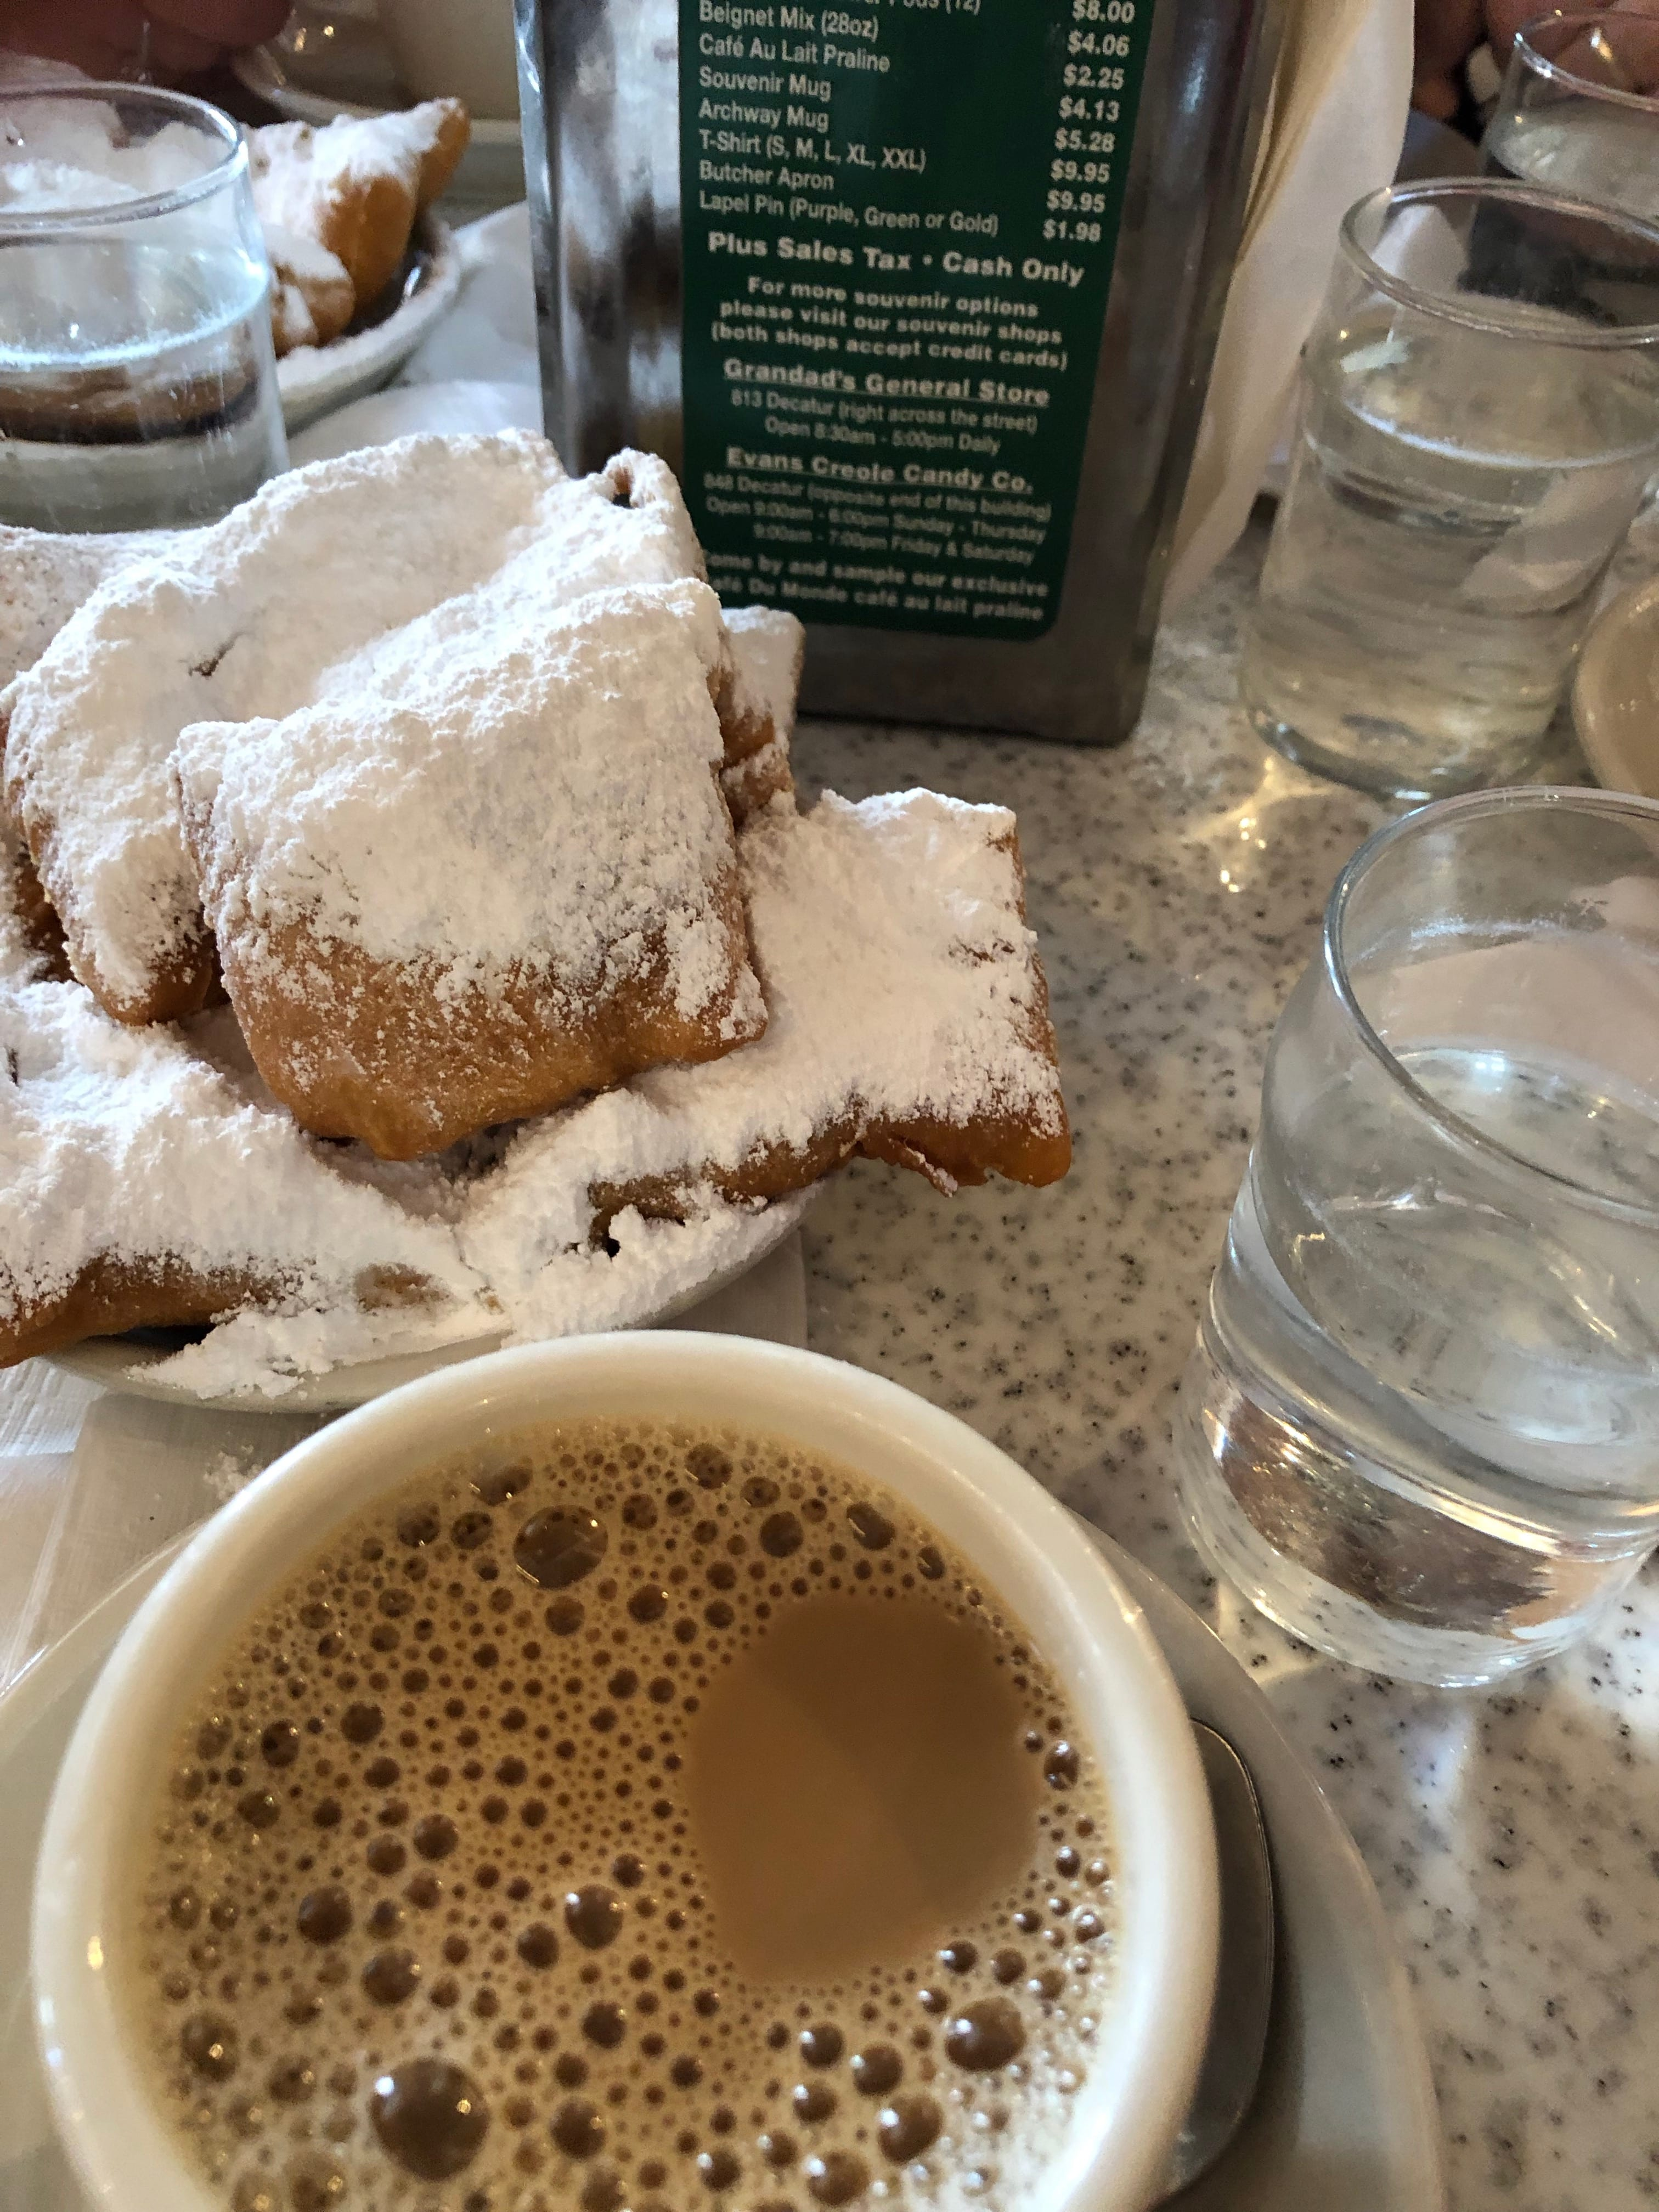 Beignets and café au lait at Café Du Monde